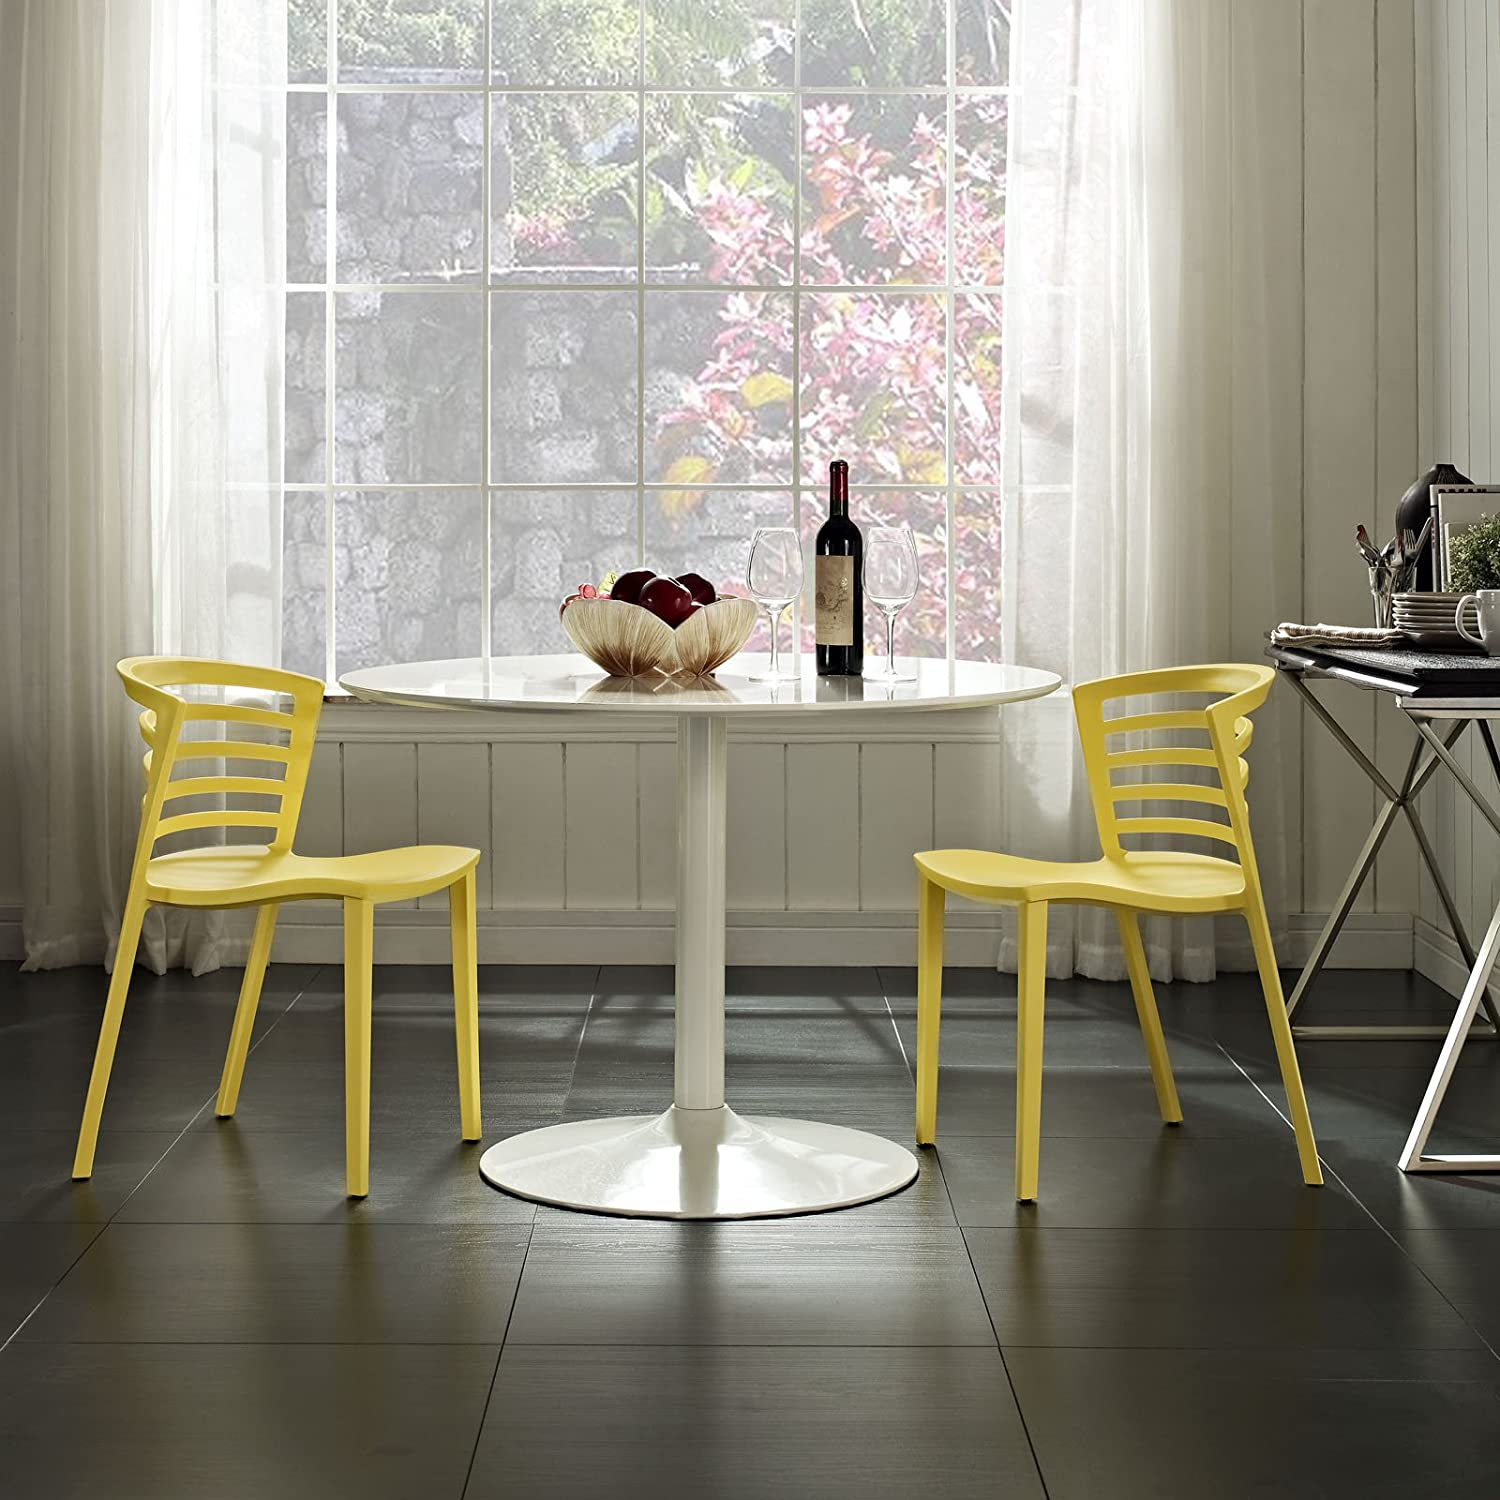 Modway Curvy Contemporary Modern Molded Plastic Two Kitchen and Dining Room Chairs in Yellow – Stackable – Comes Fully Assembled